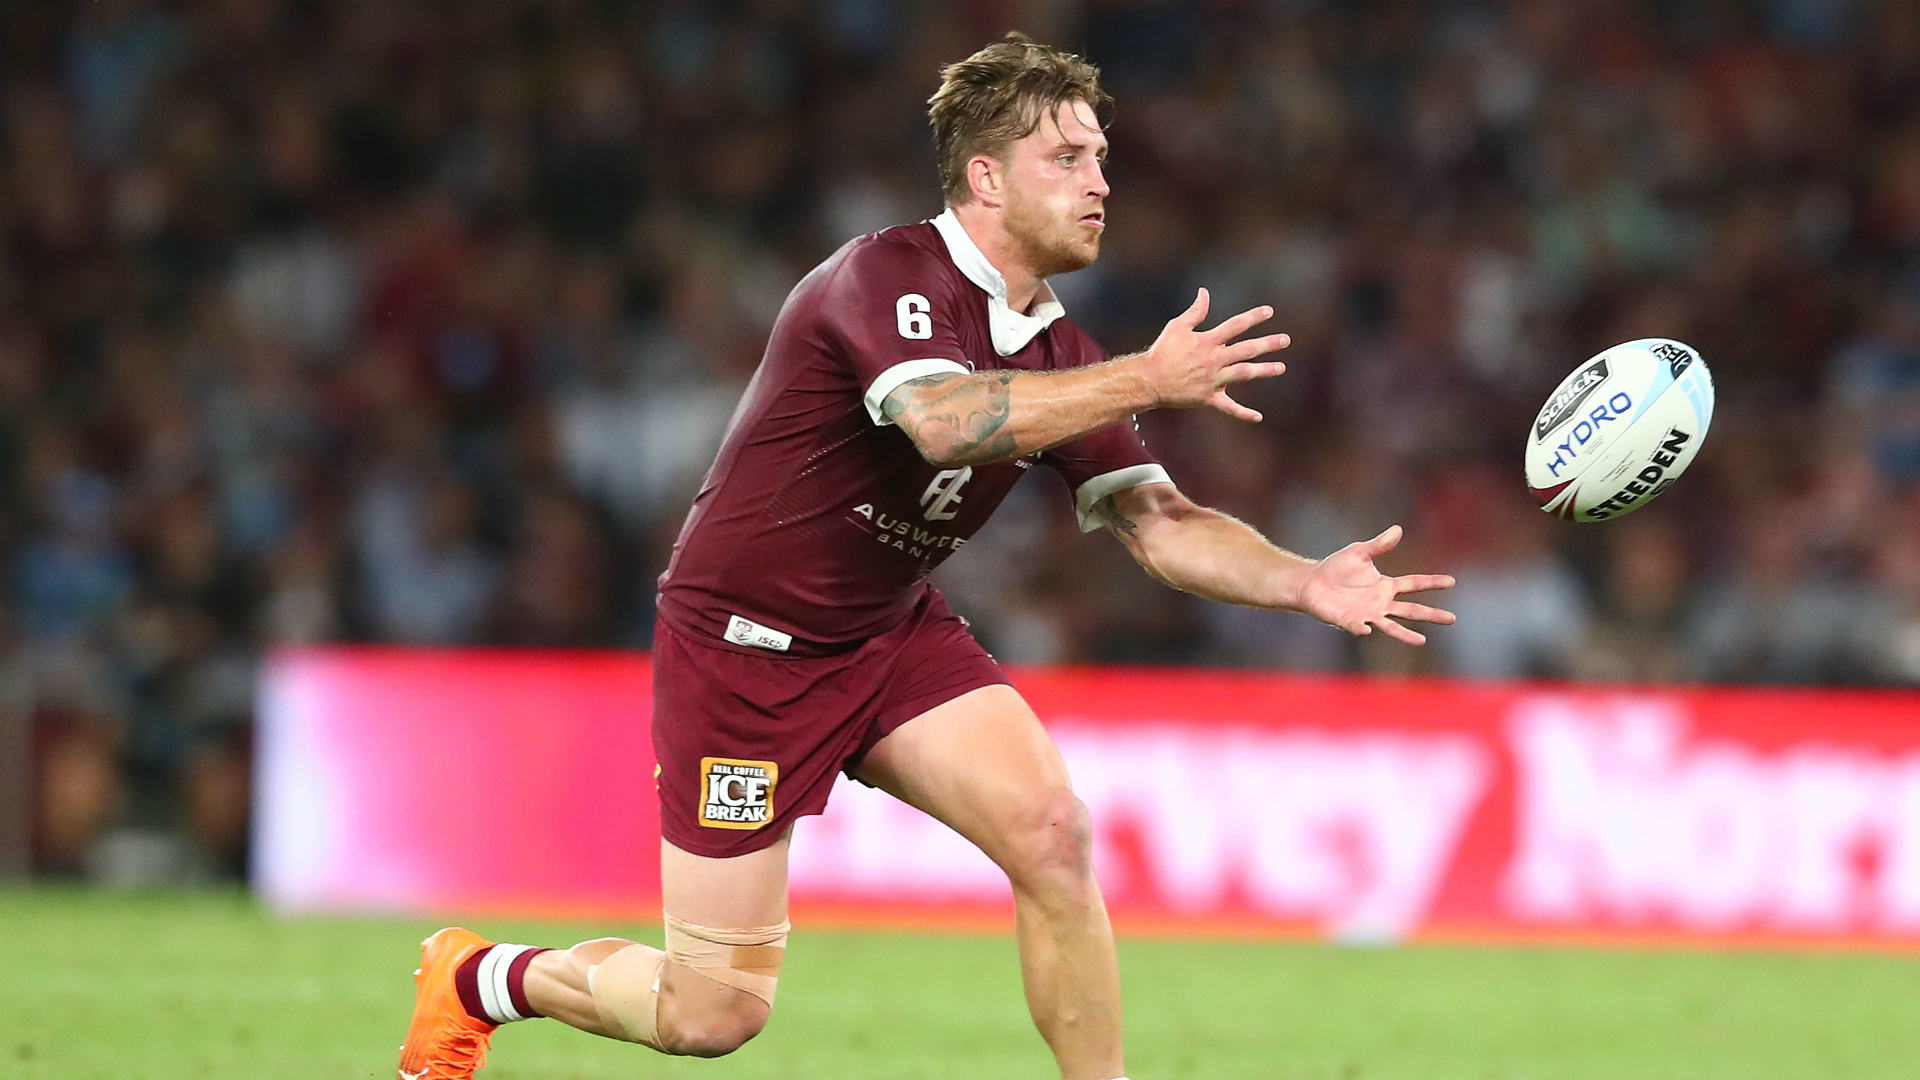 Queensland 20-14 New South Wales: Marvellous Munster inspires Origin triumph